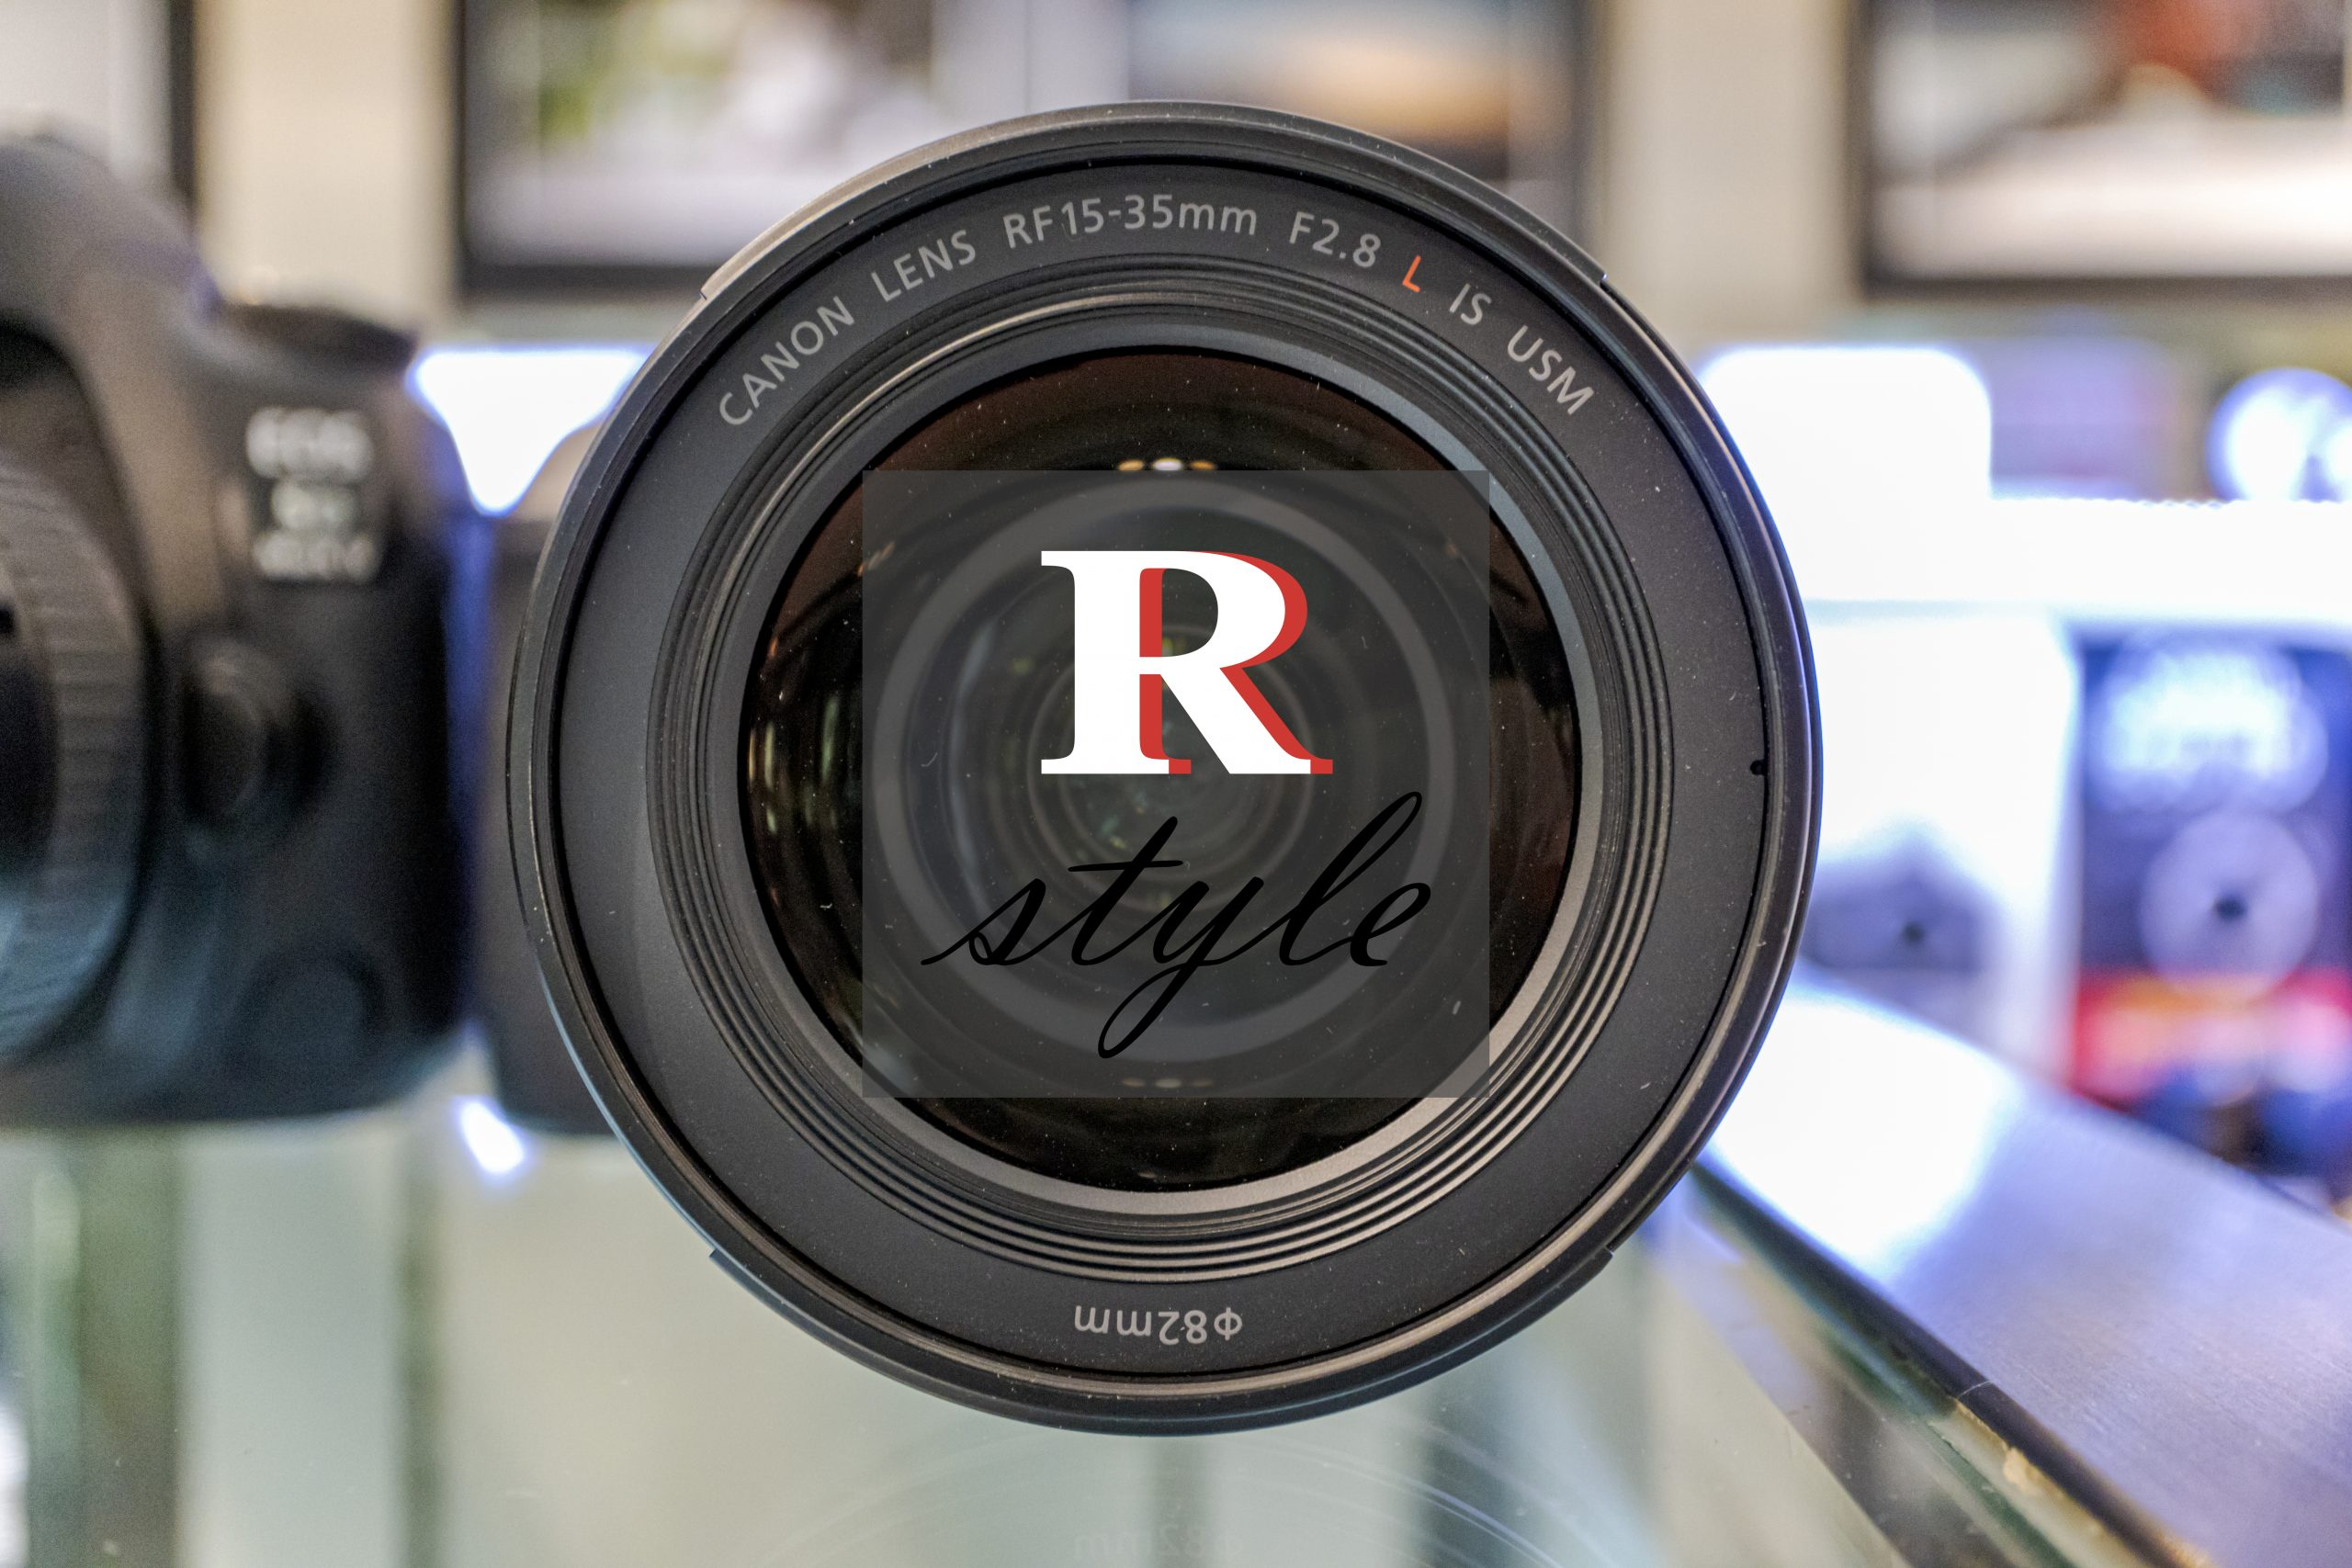 【Canon】 R STYLE ~RF15-35mm F2.8 L IS USM~